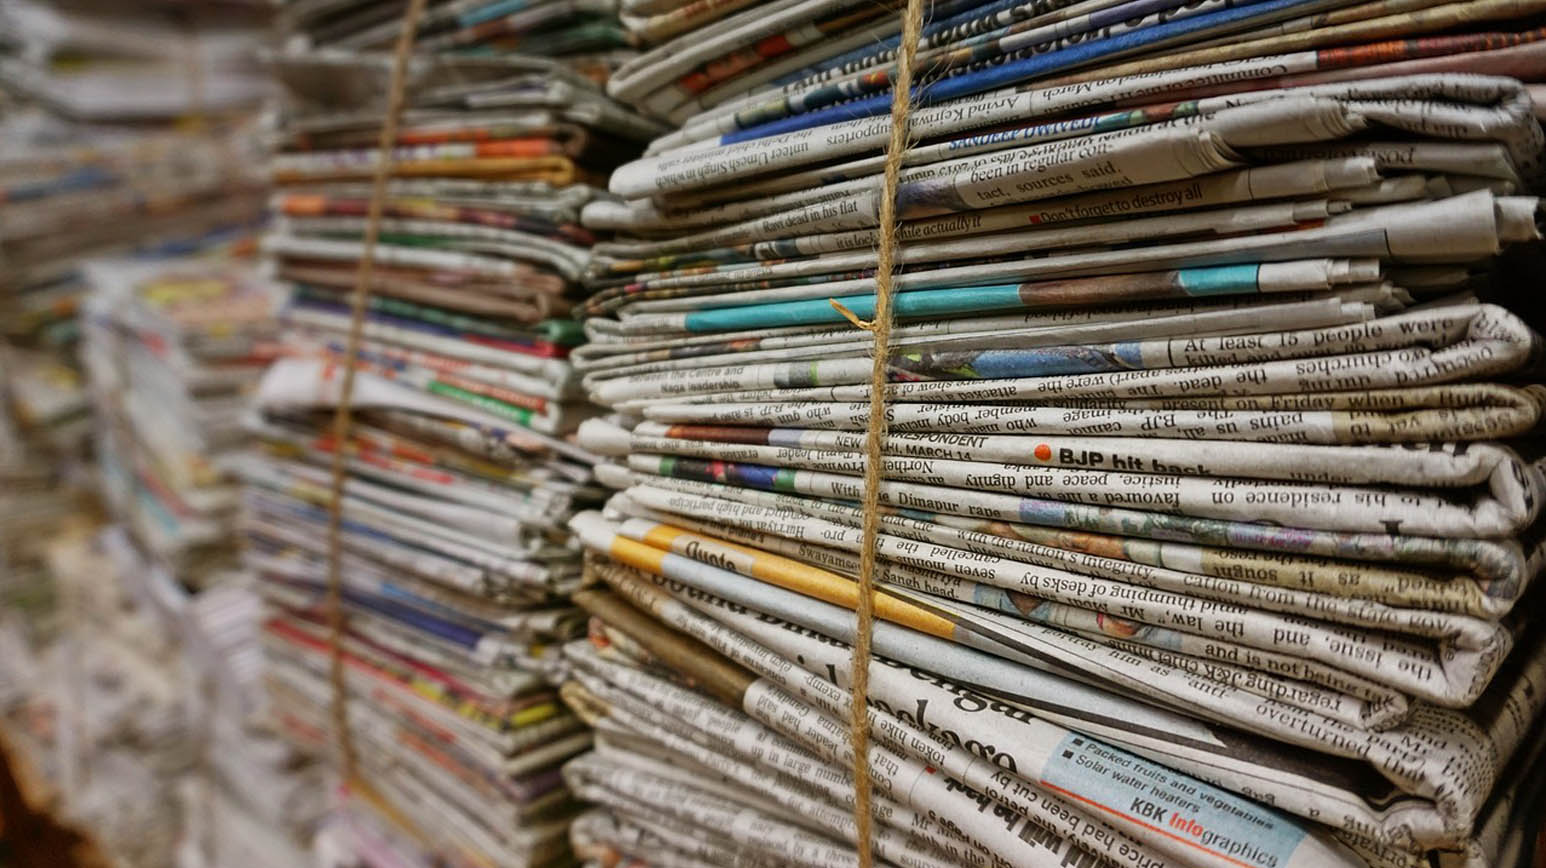 Declutter Magazines and Newspapers